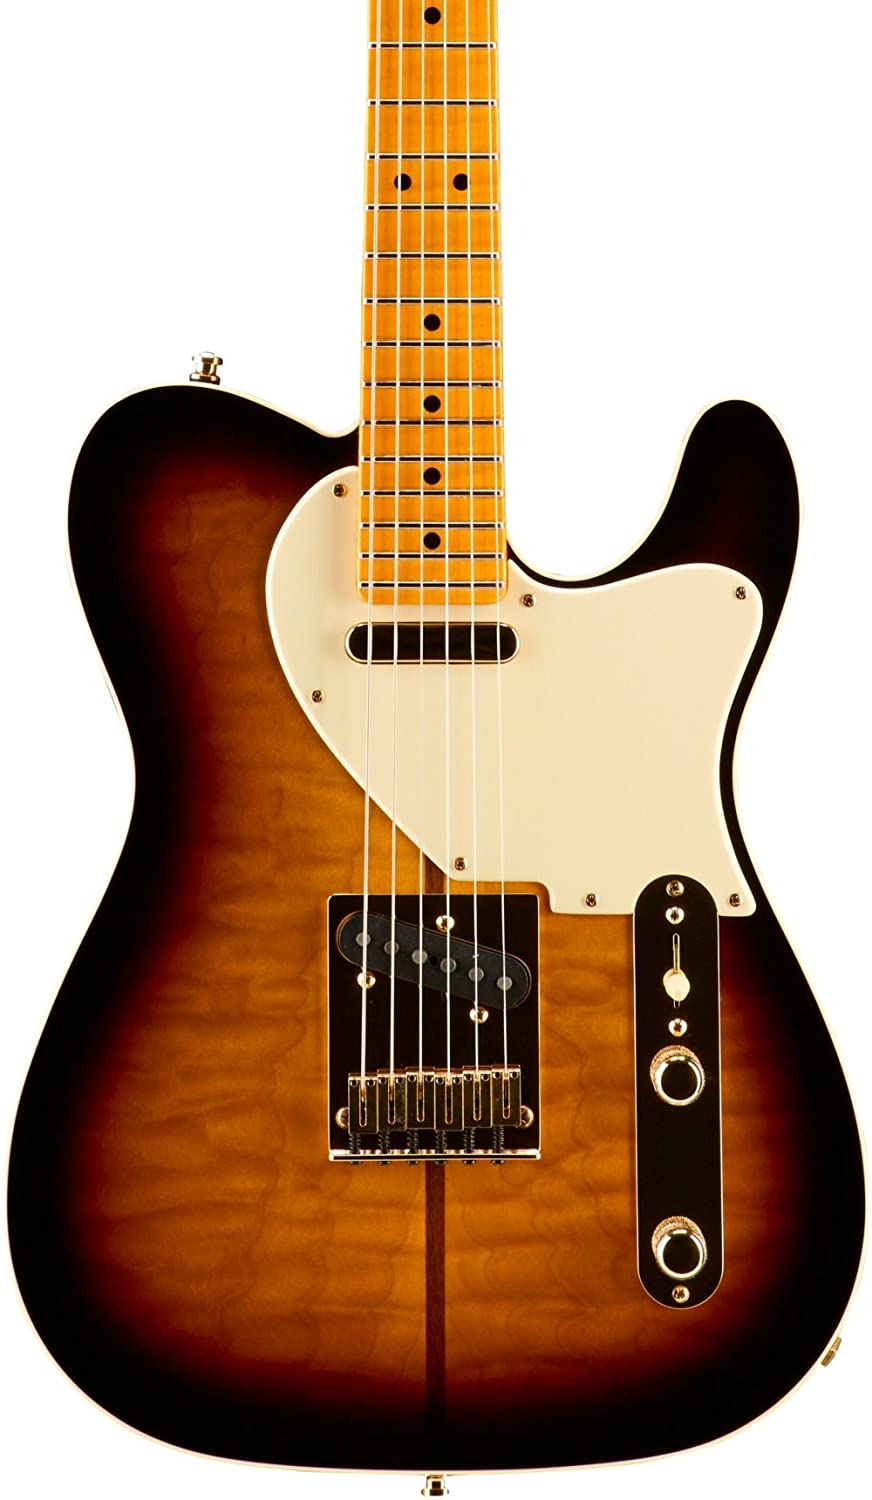 Fender Custom Shop Artist Series Merle Haggard Signature Telecaster Sale On Texas Special Pickups Wiring Electric Guitar 2 Color Sunburst Musical Instruments